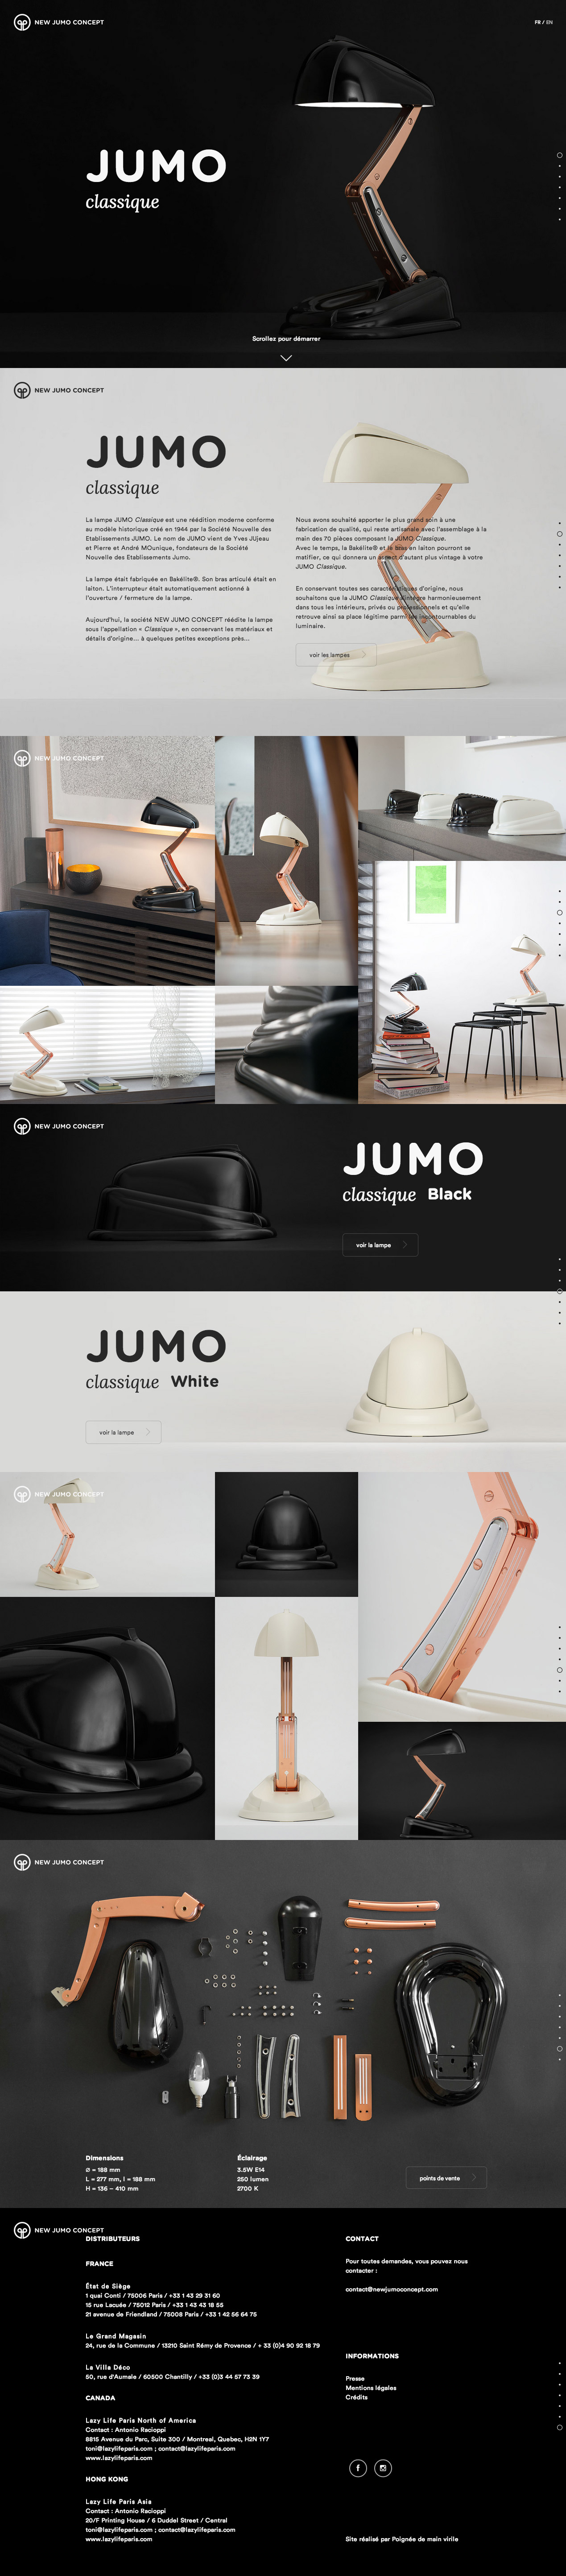 New Jumo Concept Website Screenshot